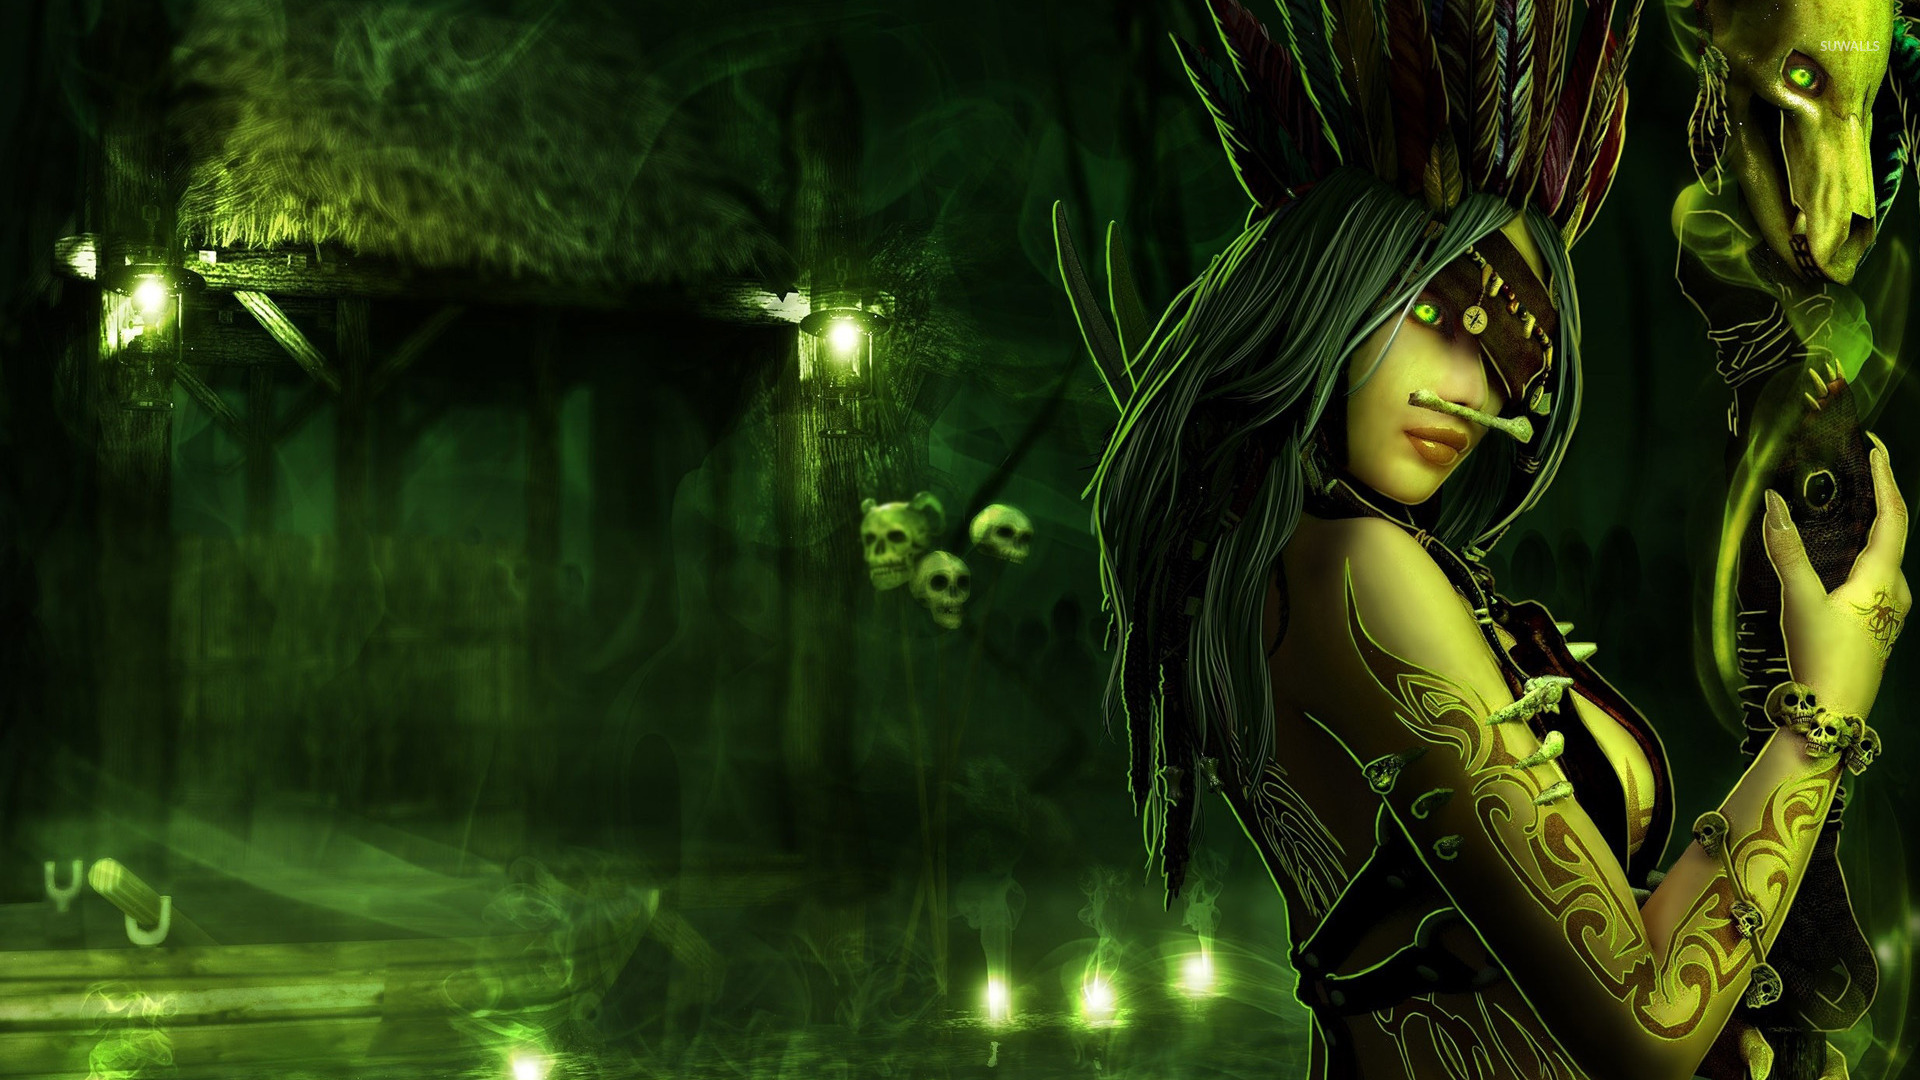 Wallpaper Girl With Headphones Voodoo Priestess Wallpaper Fantasy Wallpapers 17846